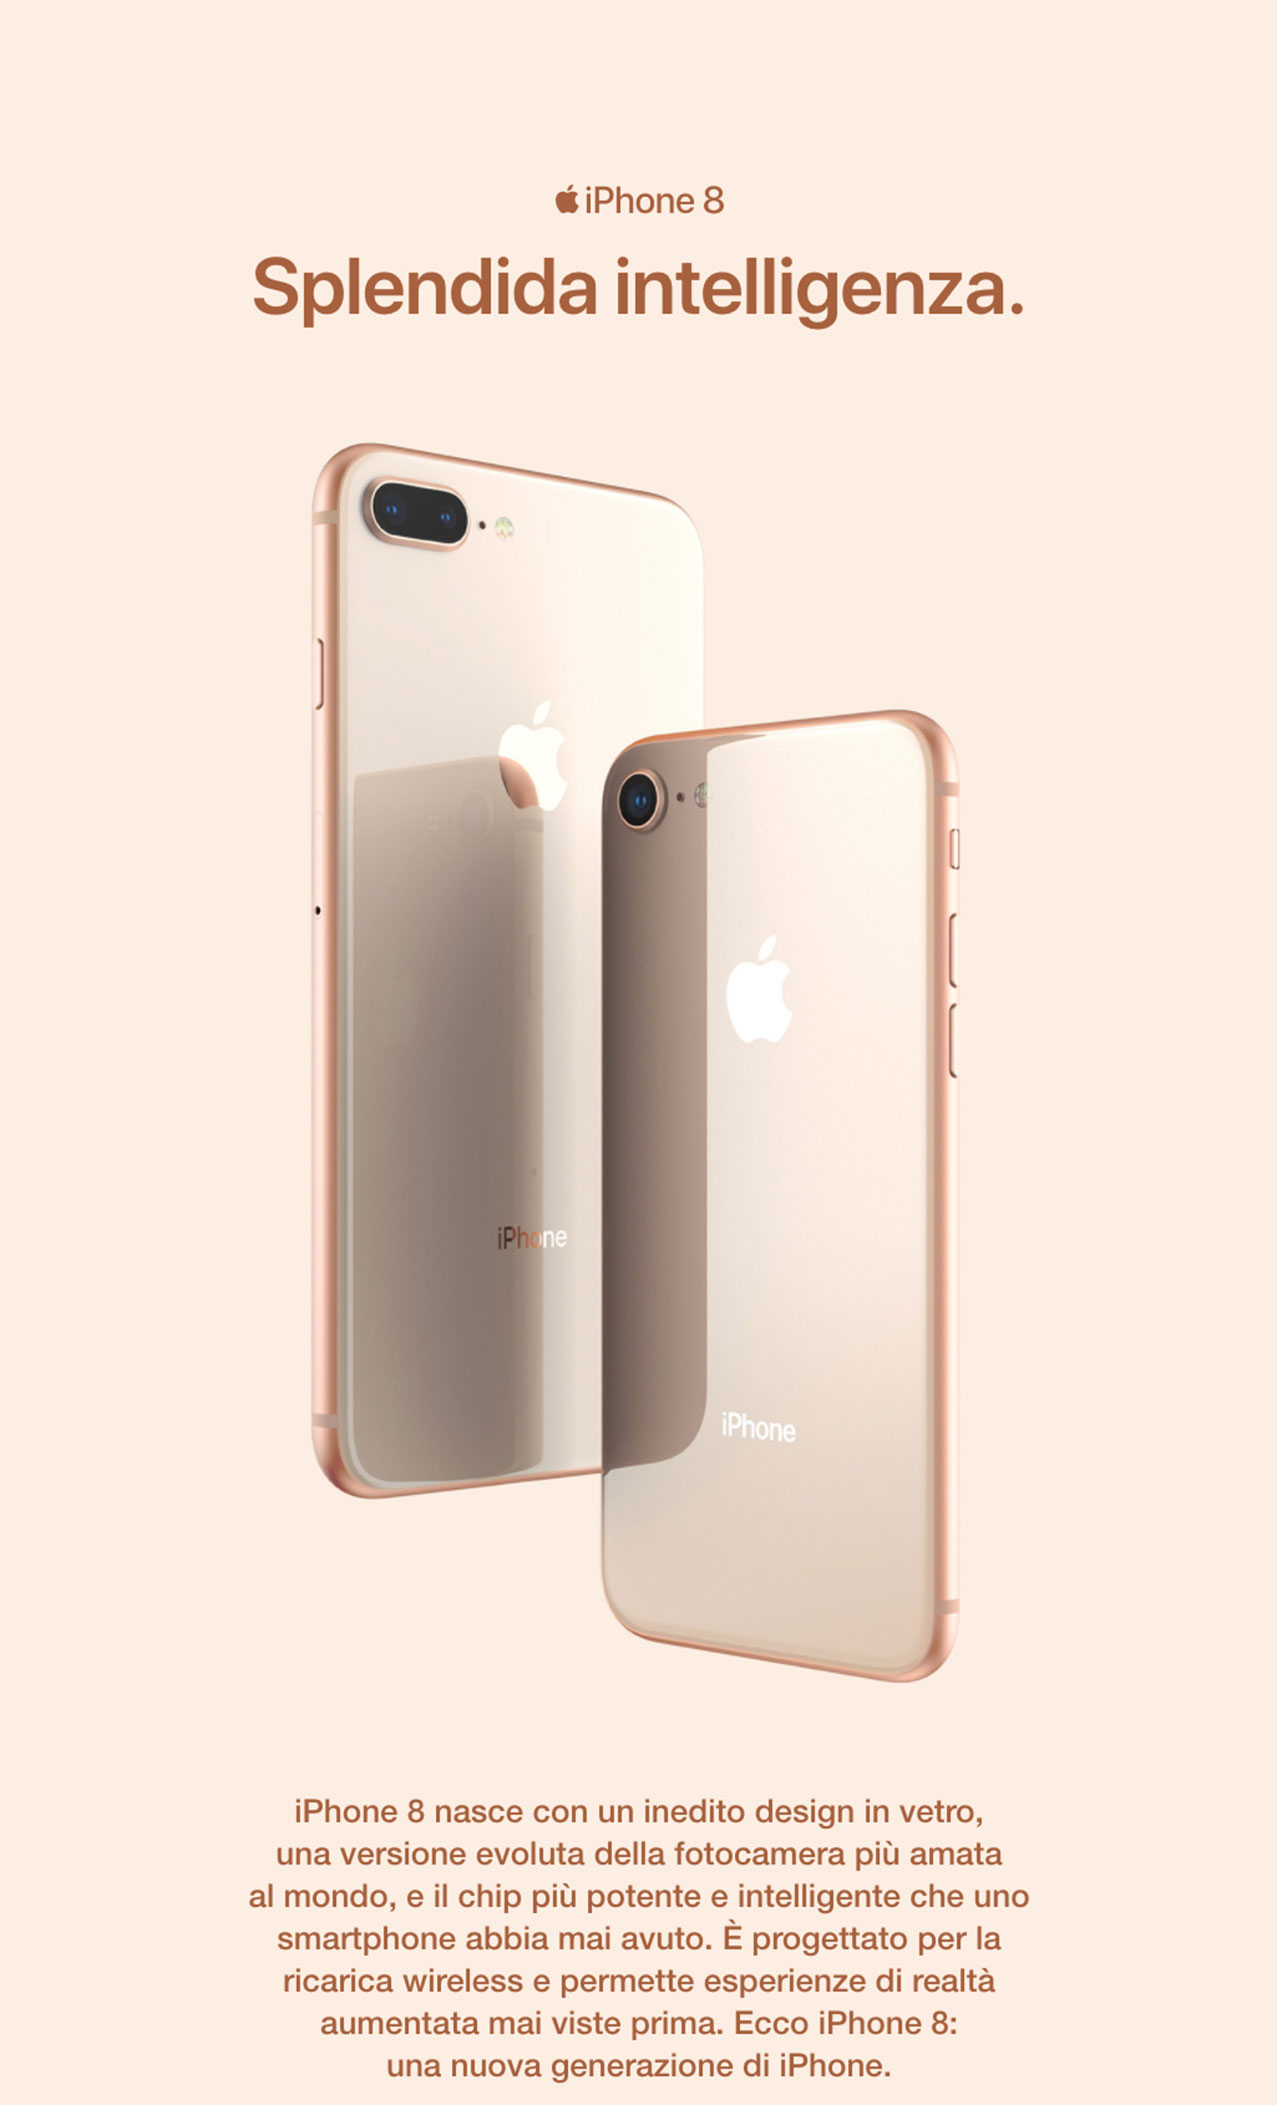 iPhone 8 splendida intelligenza